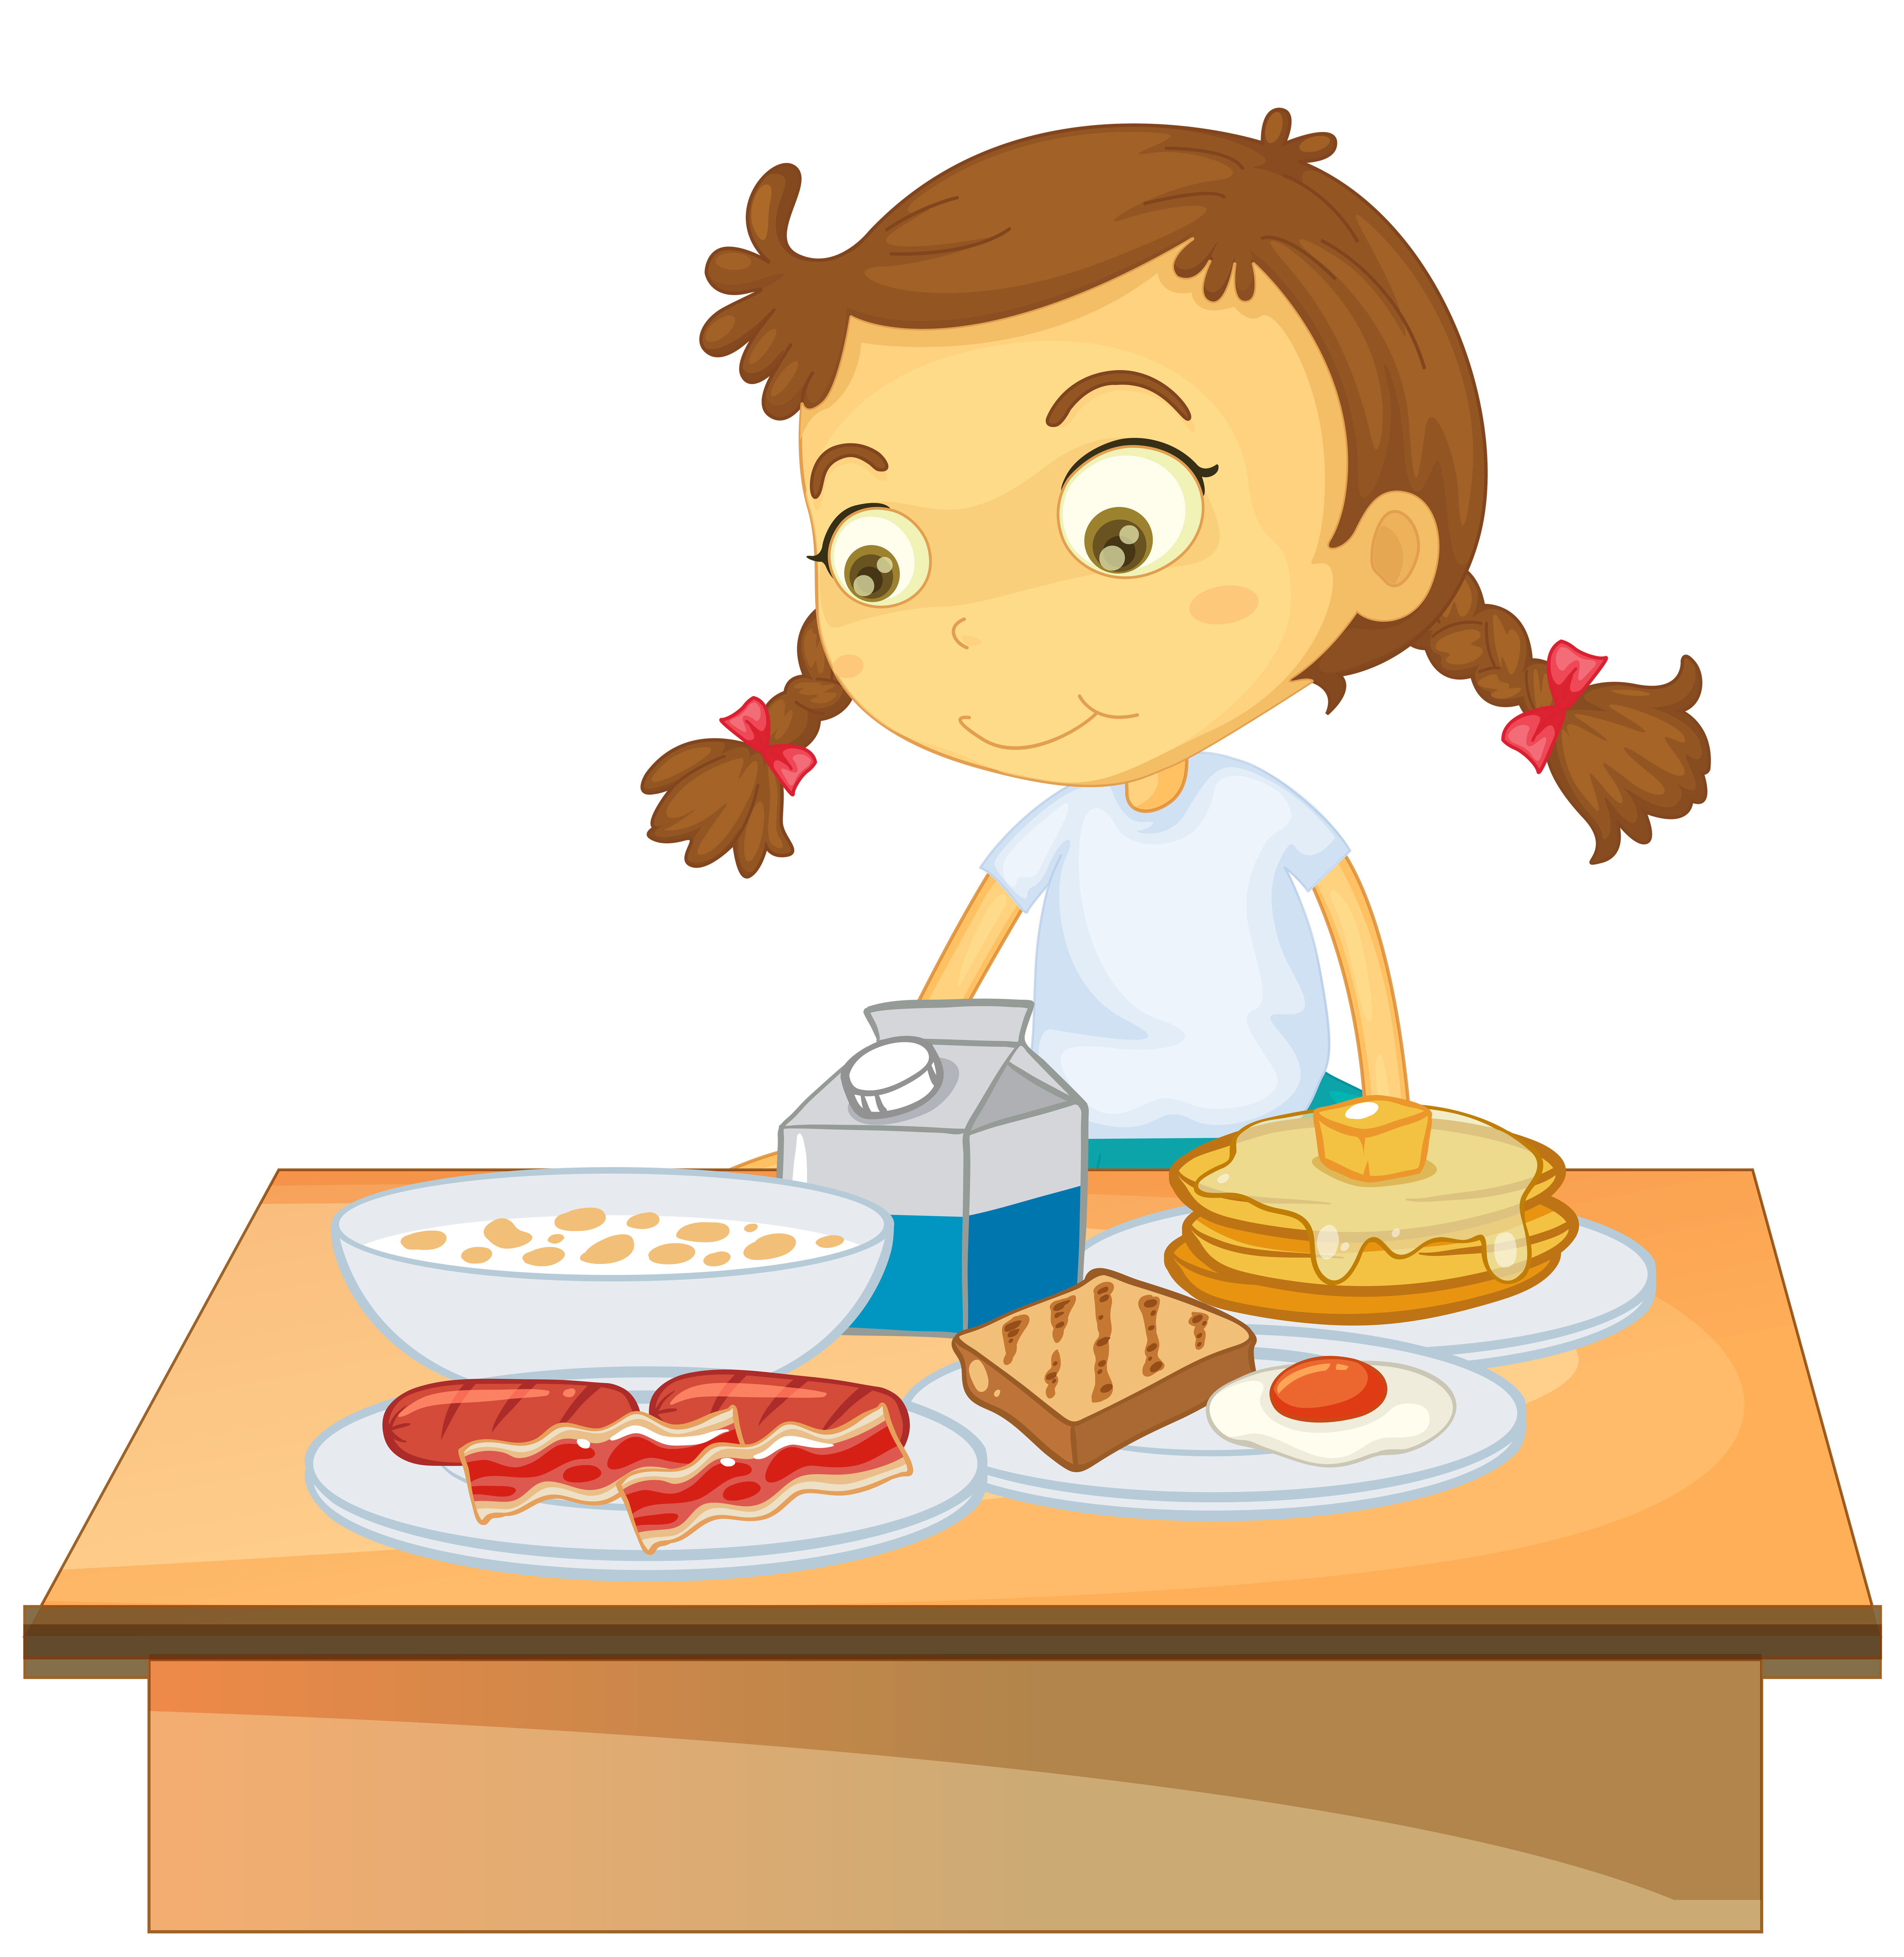 A Girl Eating Breakfast on White Background - Download ...